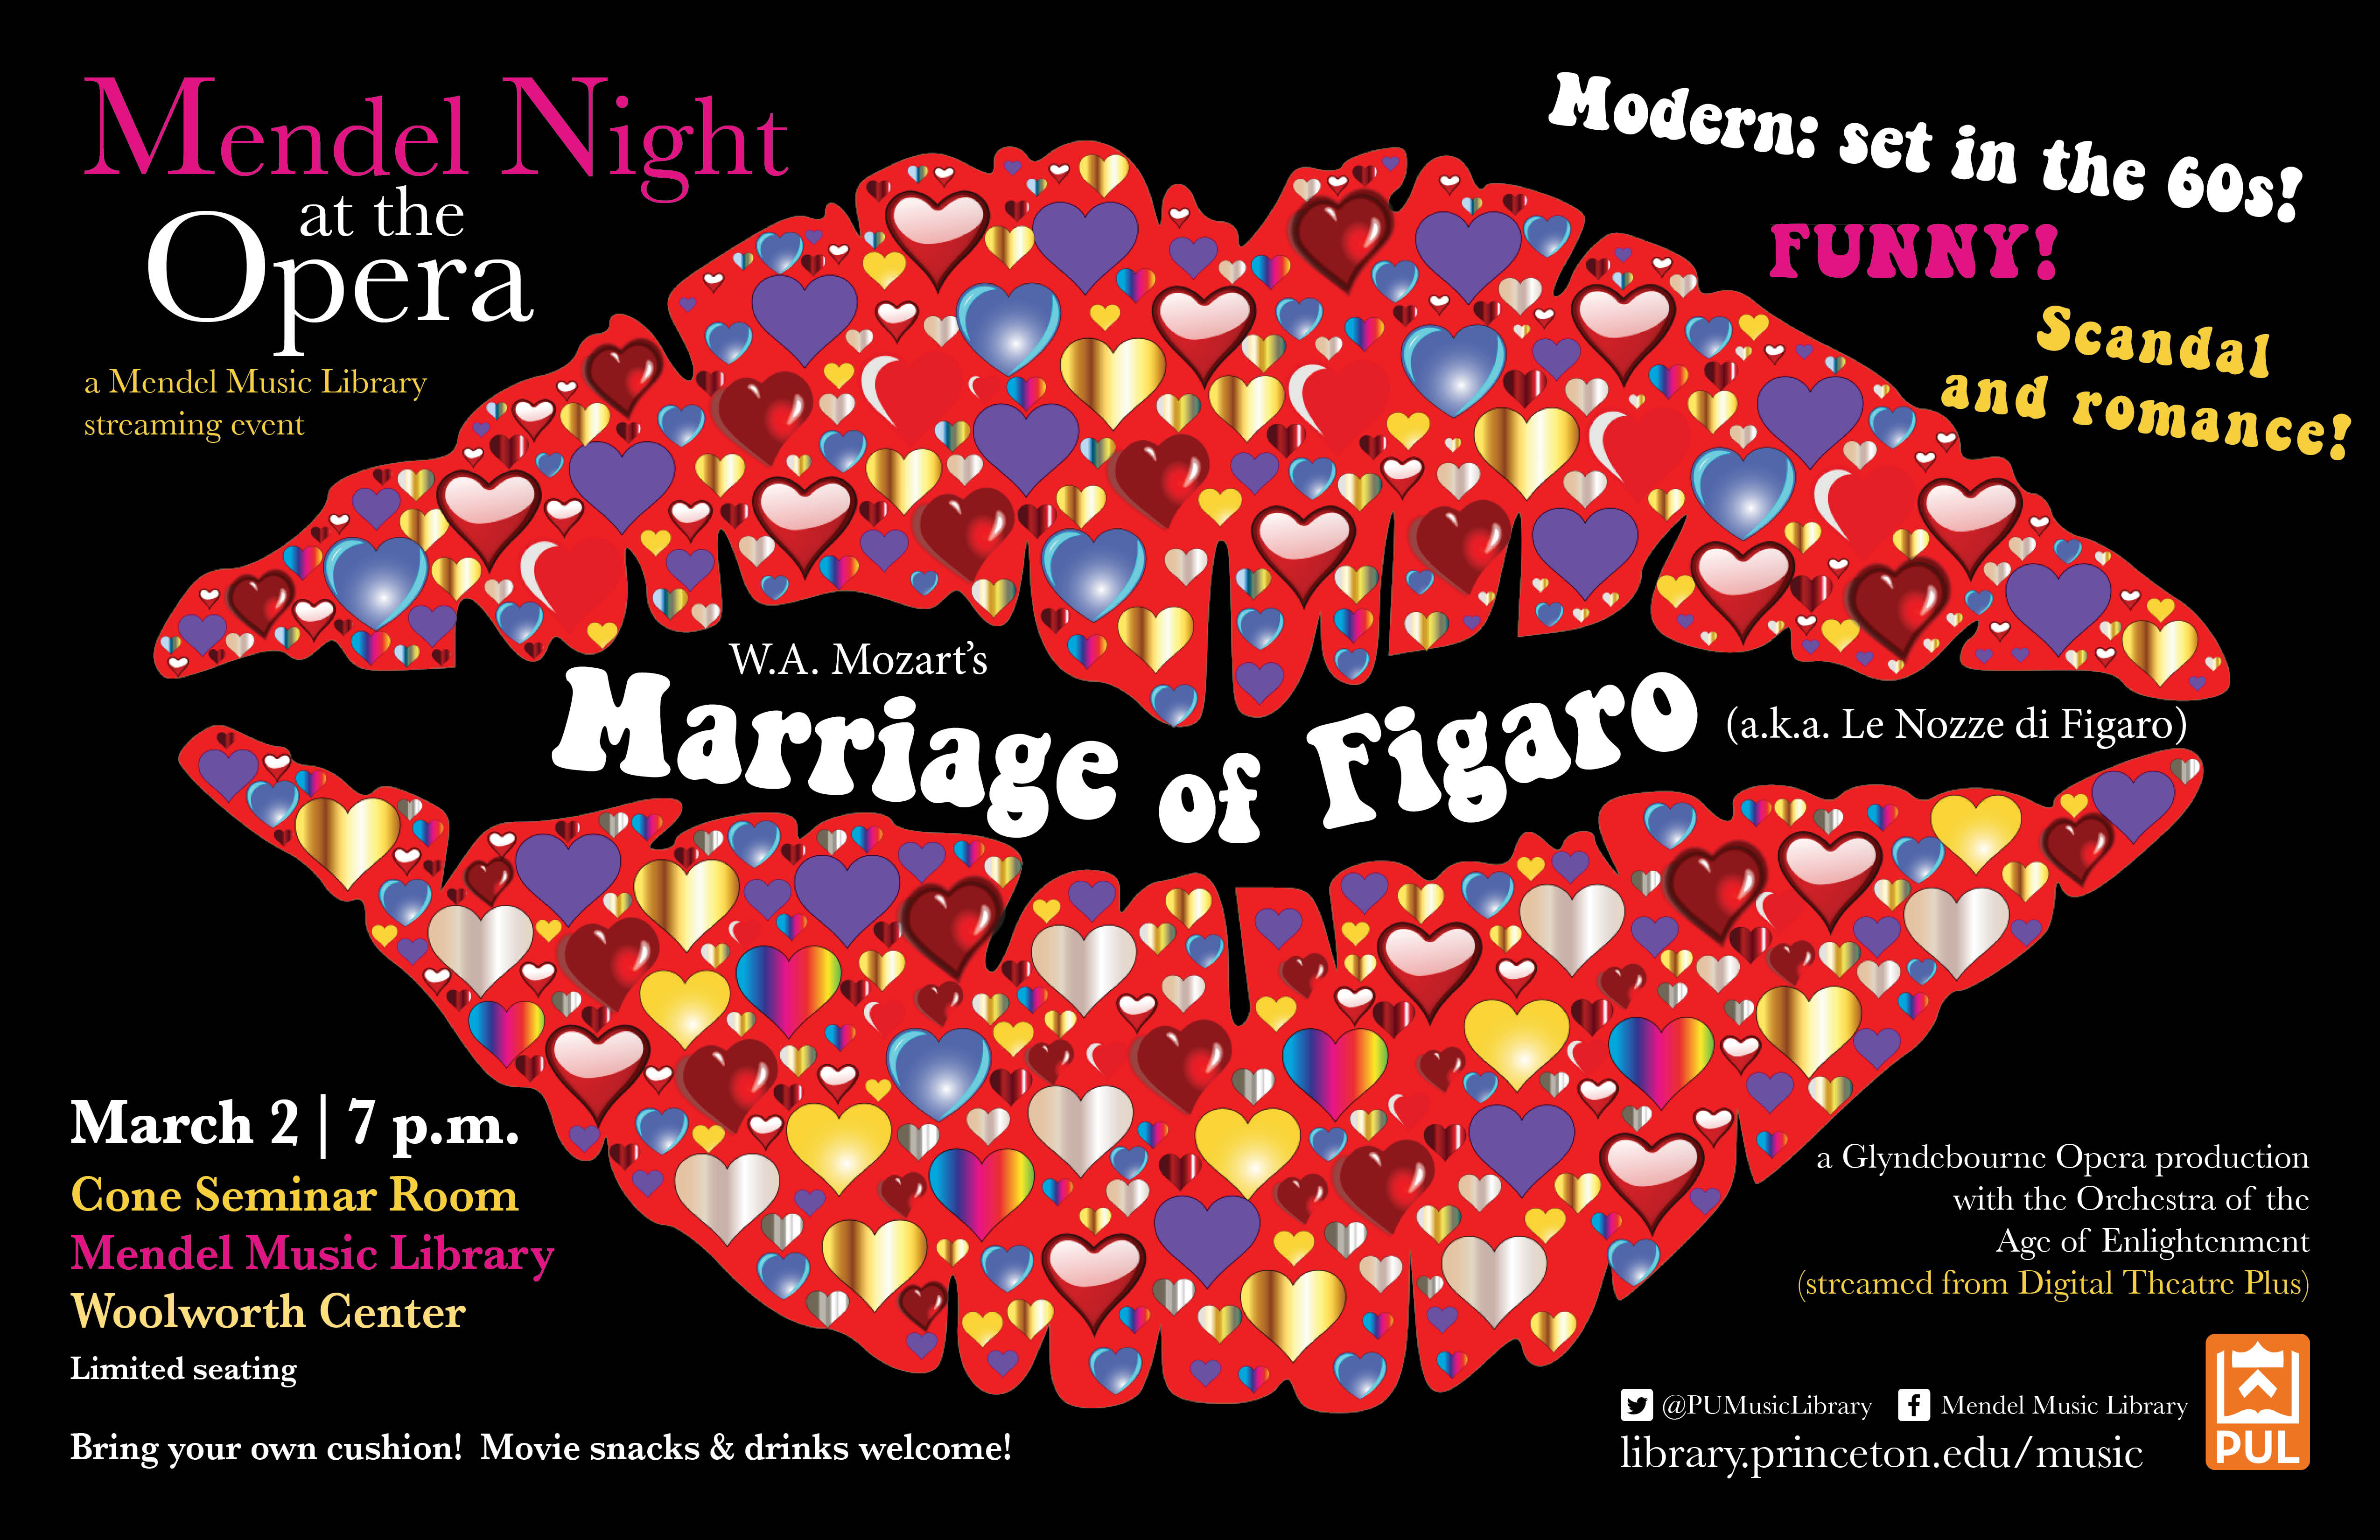 Mendel Night at the Opera - Figaro